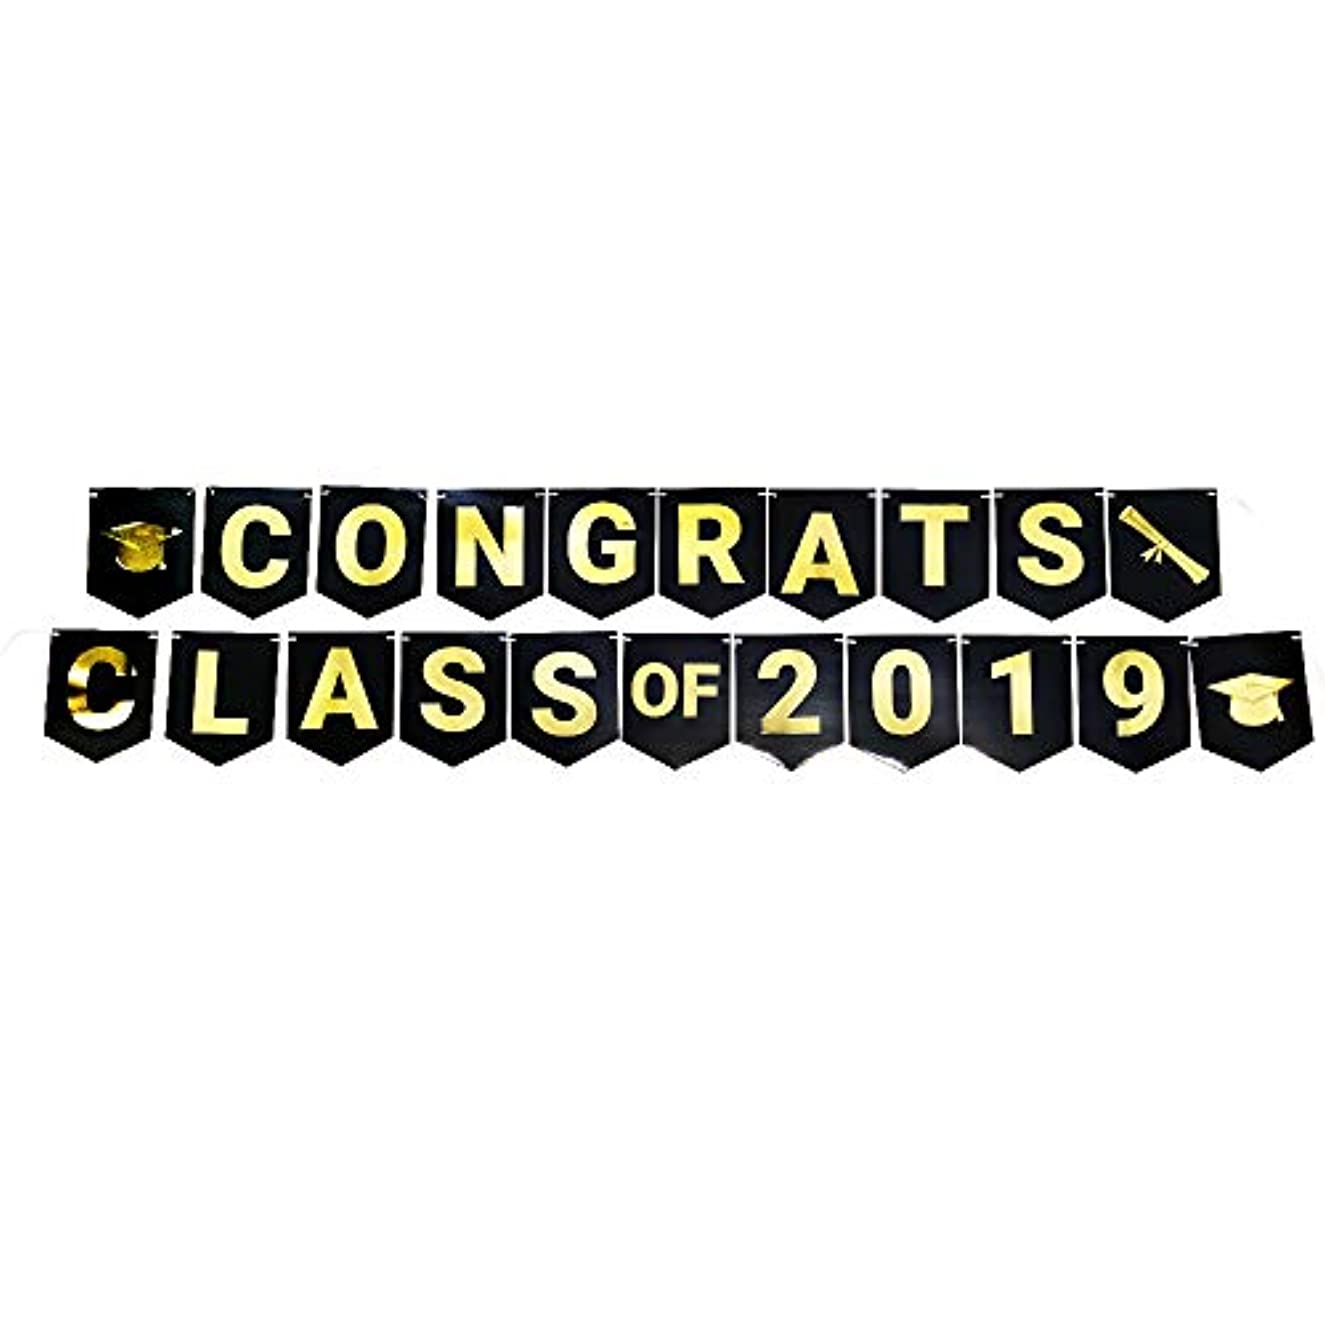 Graduation Banners, Graduation Party Supplies, Jointed 2019 Banner, Party Decorations, Hanging Room Decorations